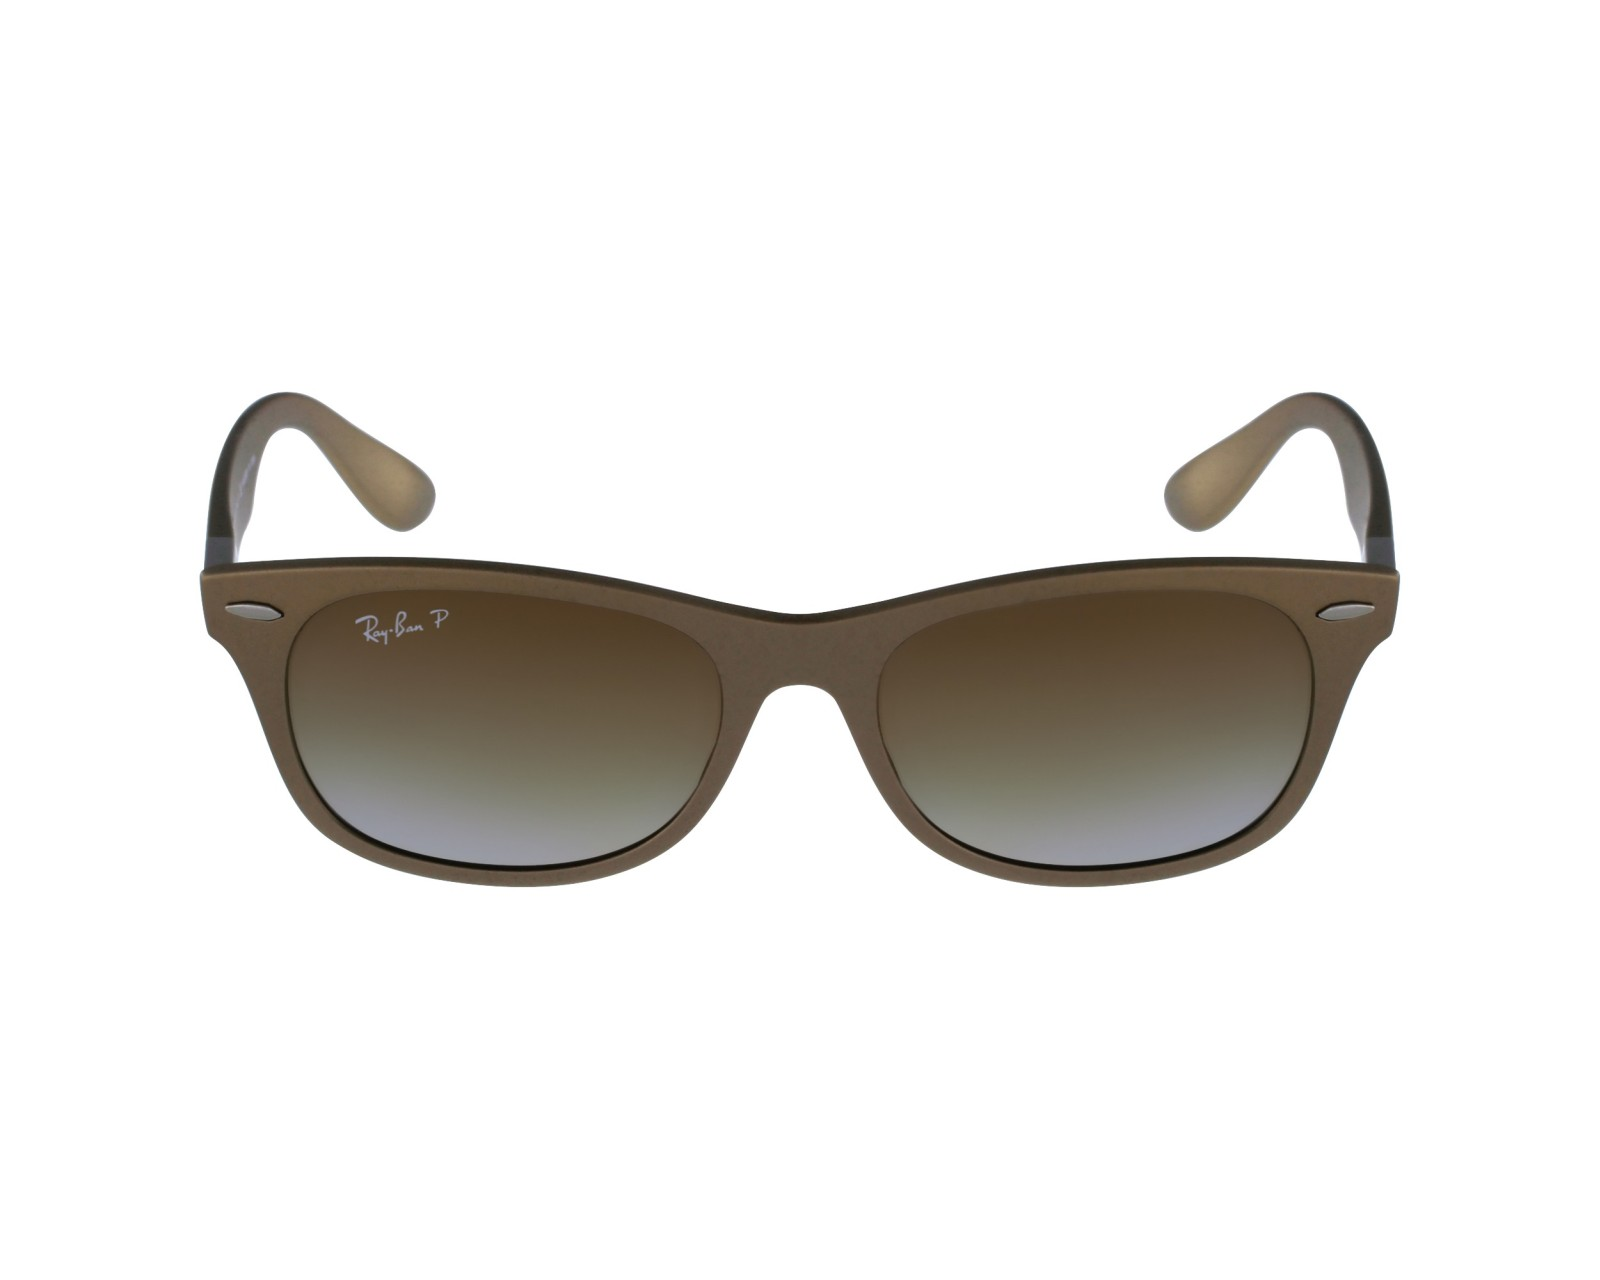 df47239439 thumbnail Sunglasses Ray-Ban RB-4207 6033 T5 - Brown profile view